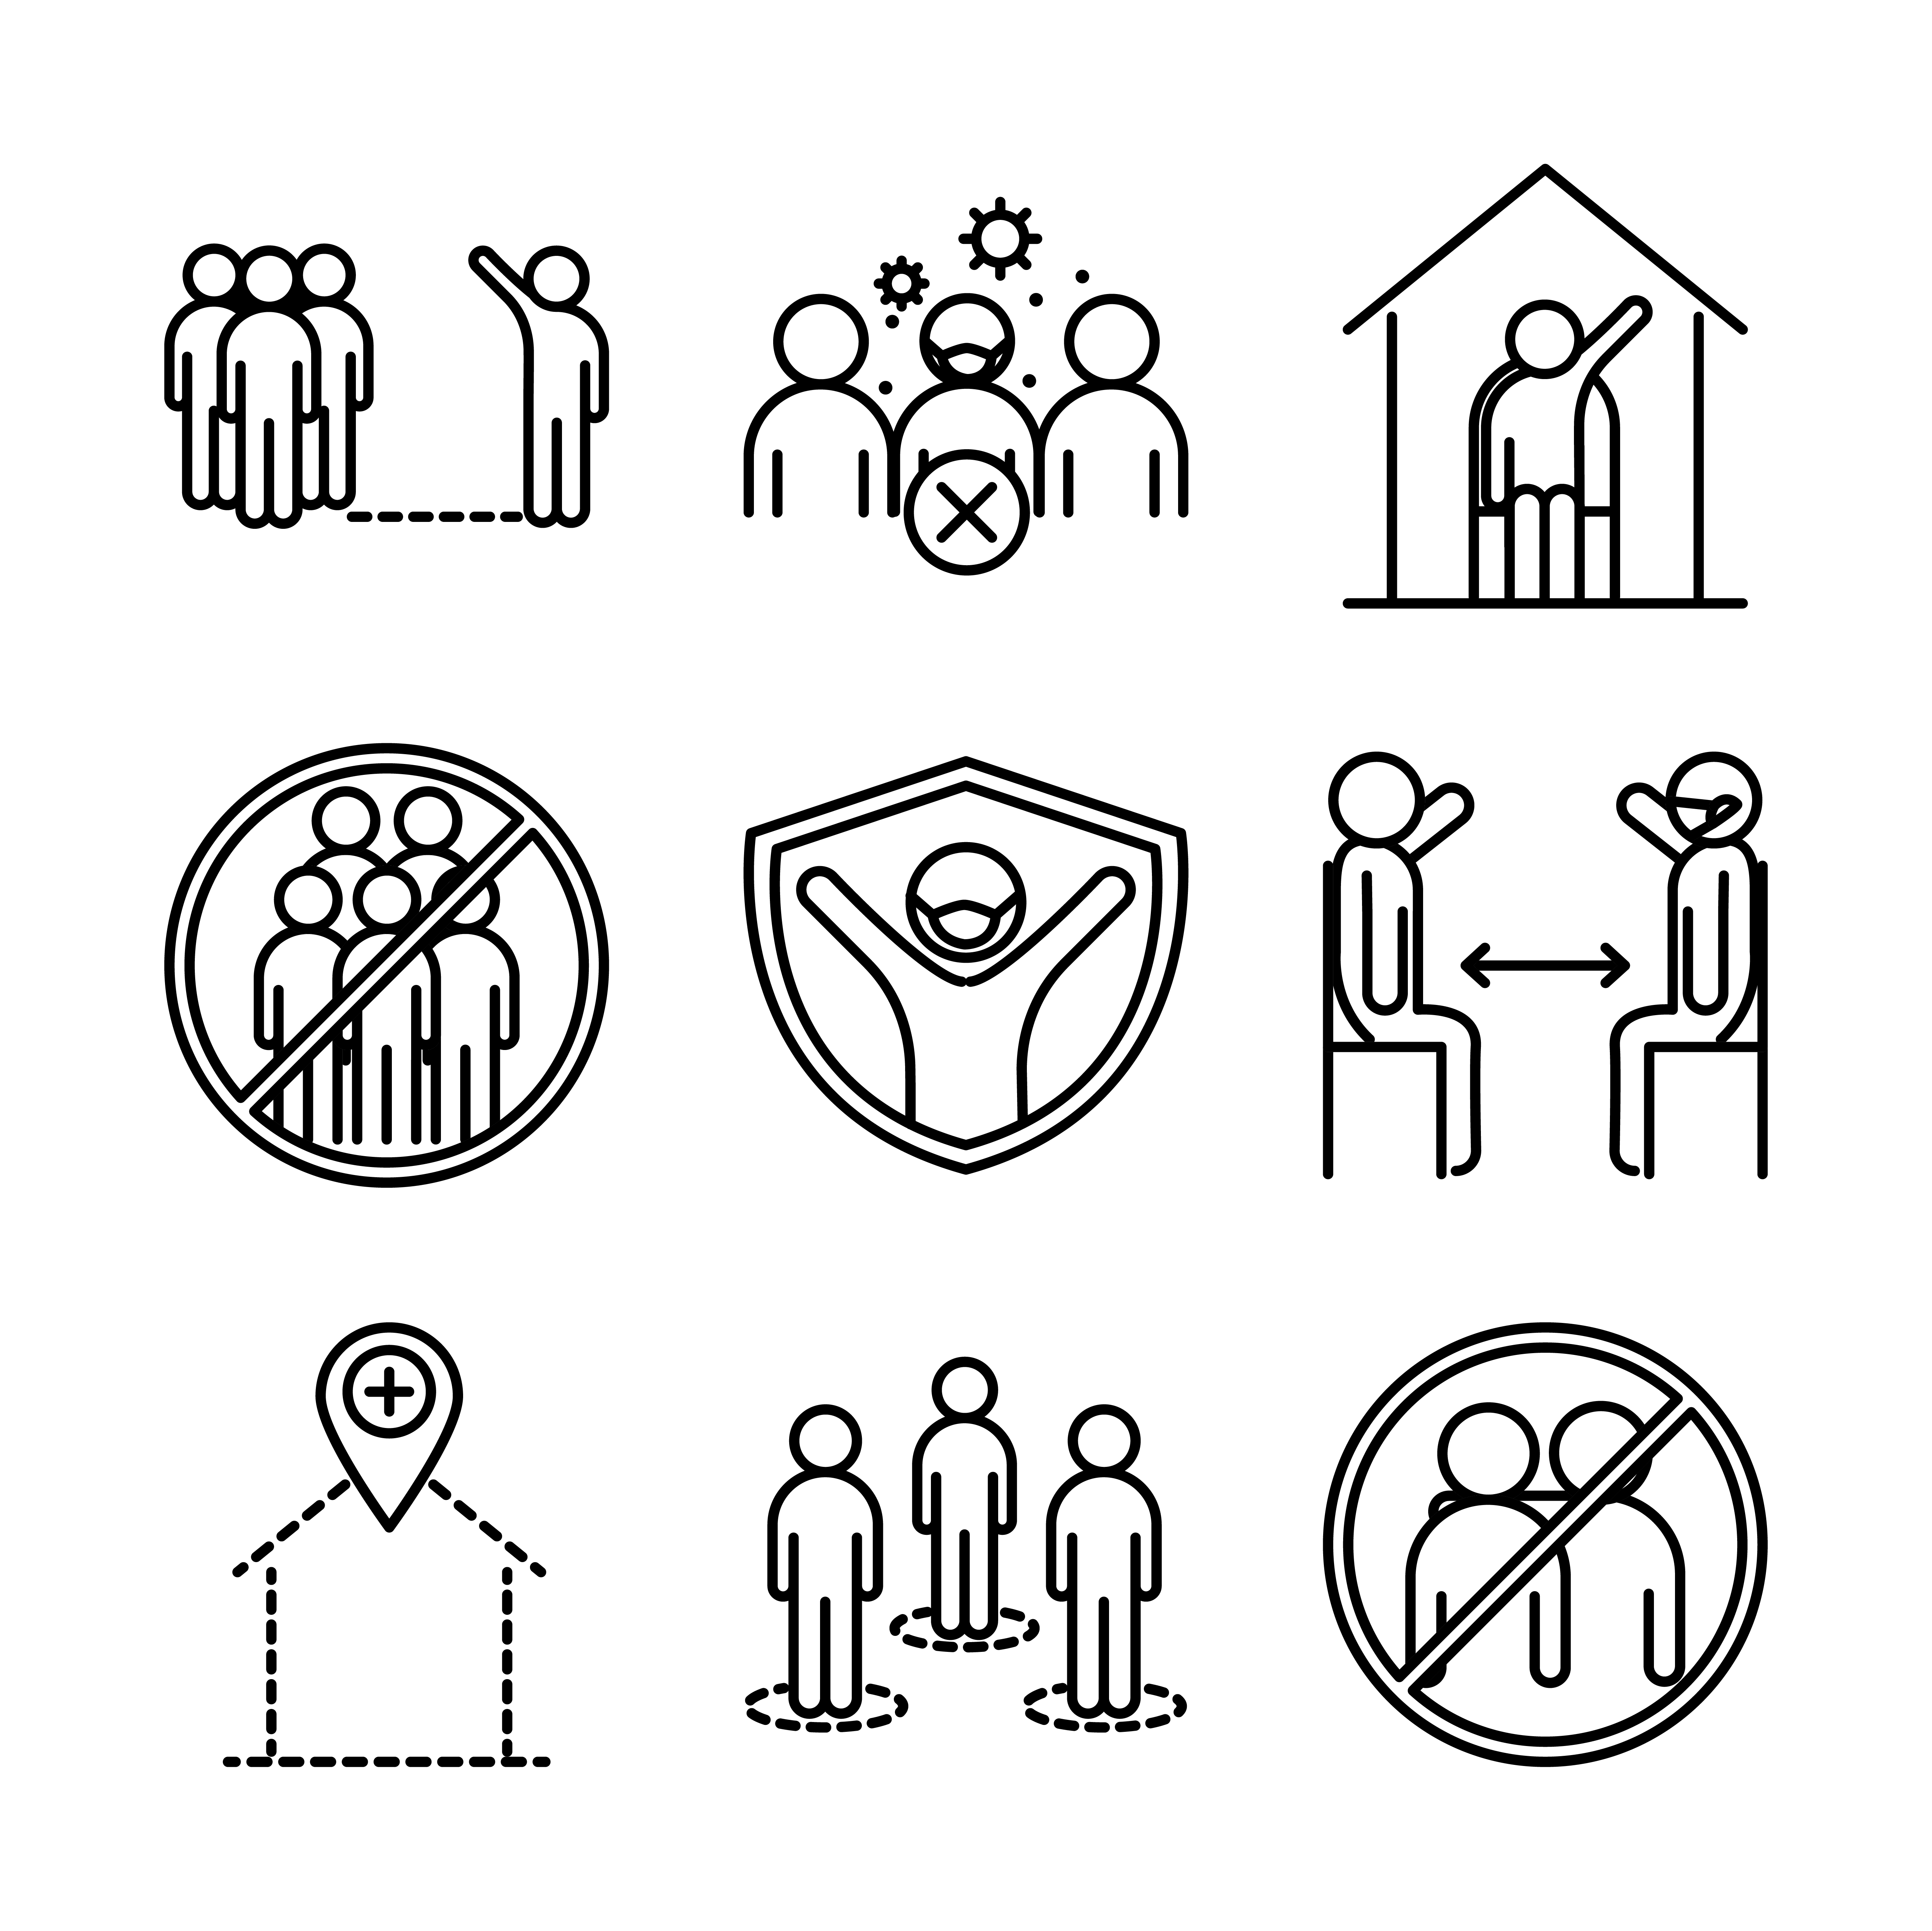 Viral infection and social distance pictogram icon set